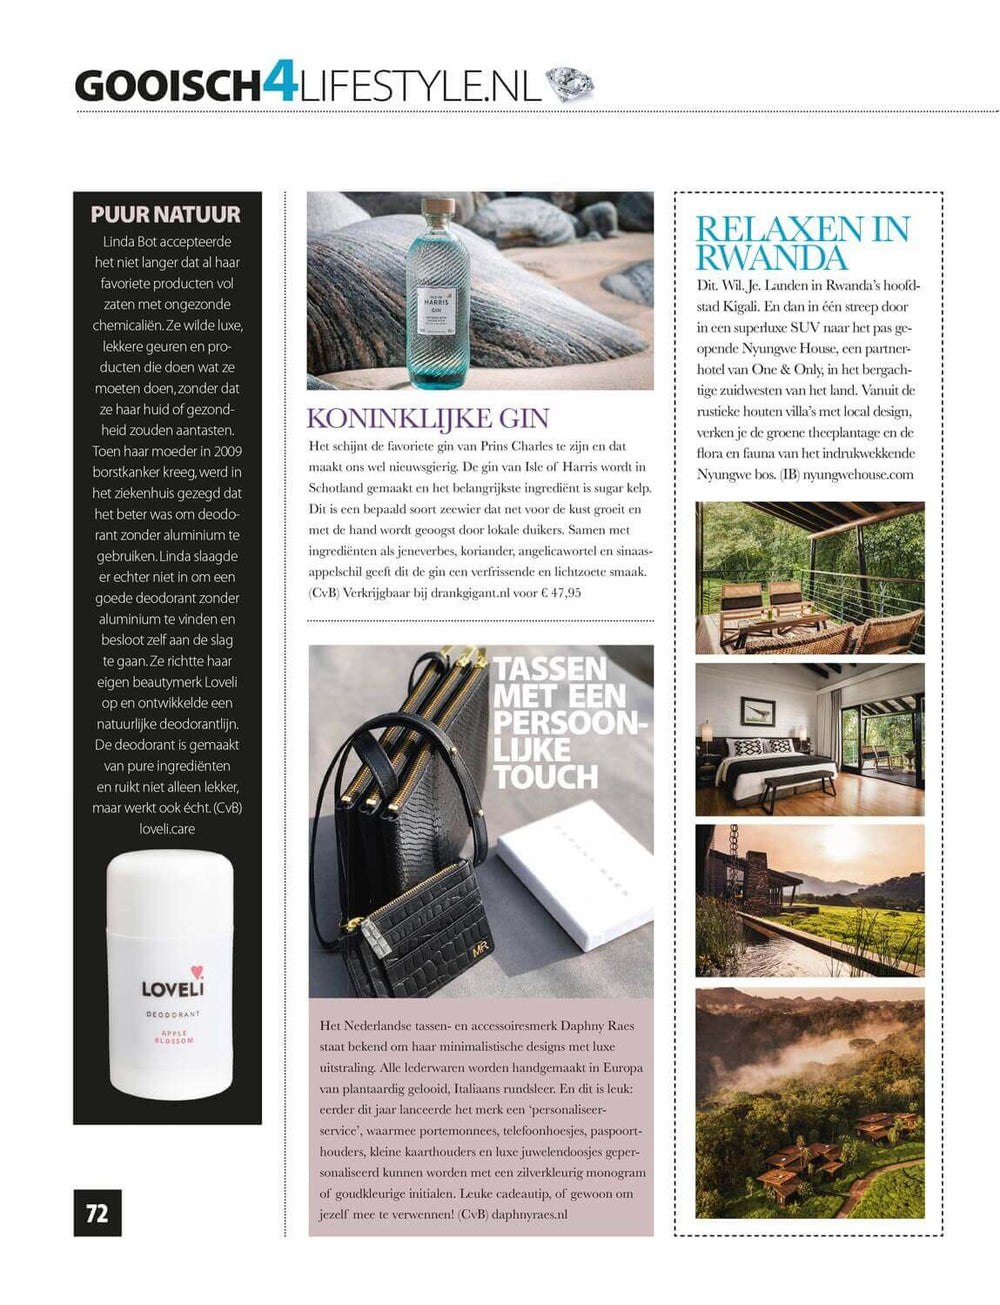 Personalisation of small leather goods by DAPHNY RAES featured in Gooisch Magazine